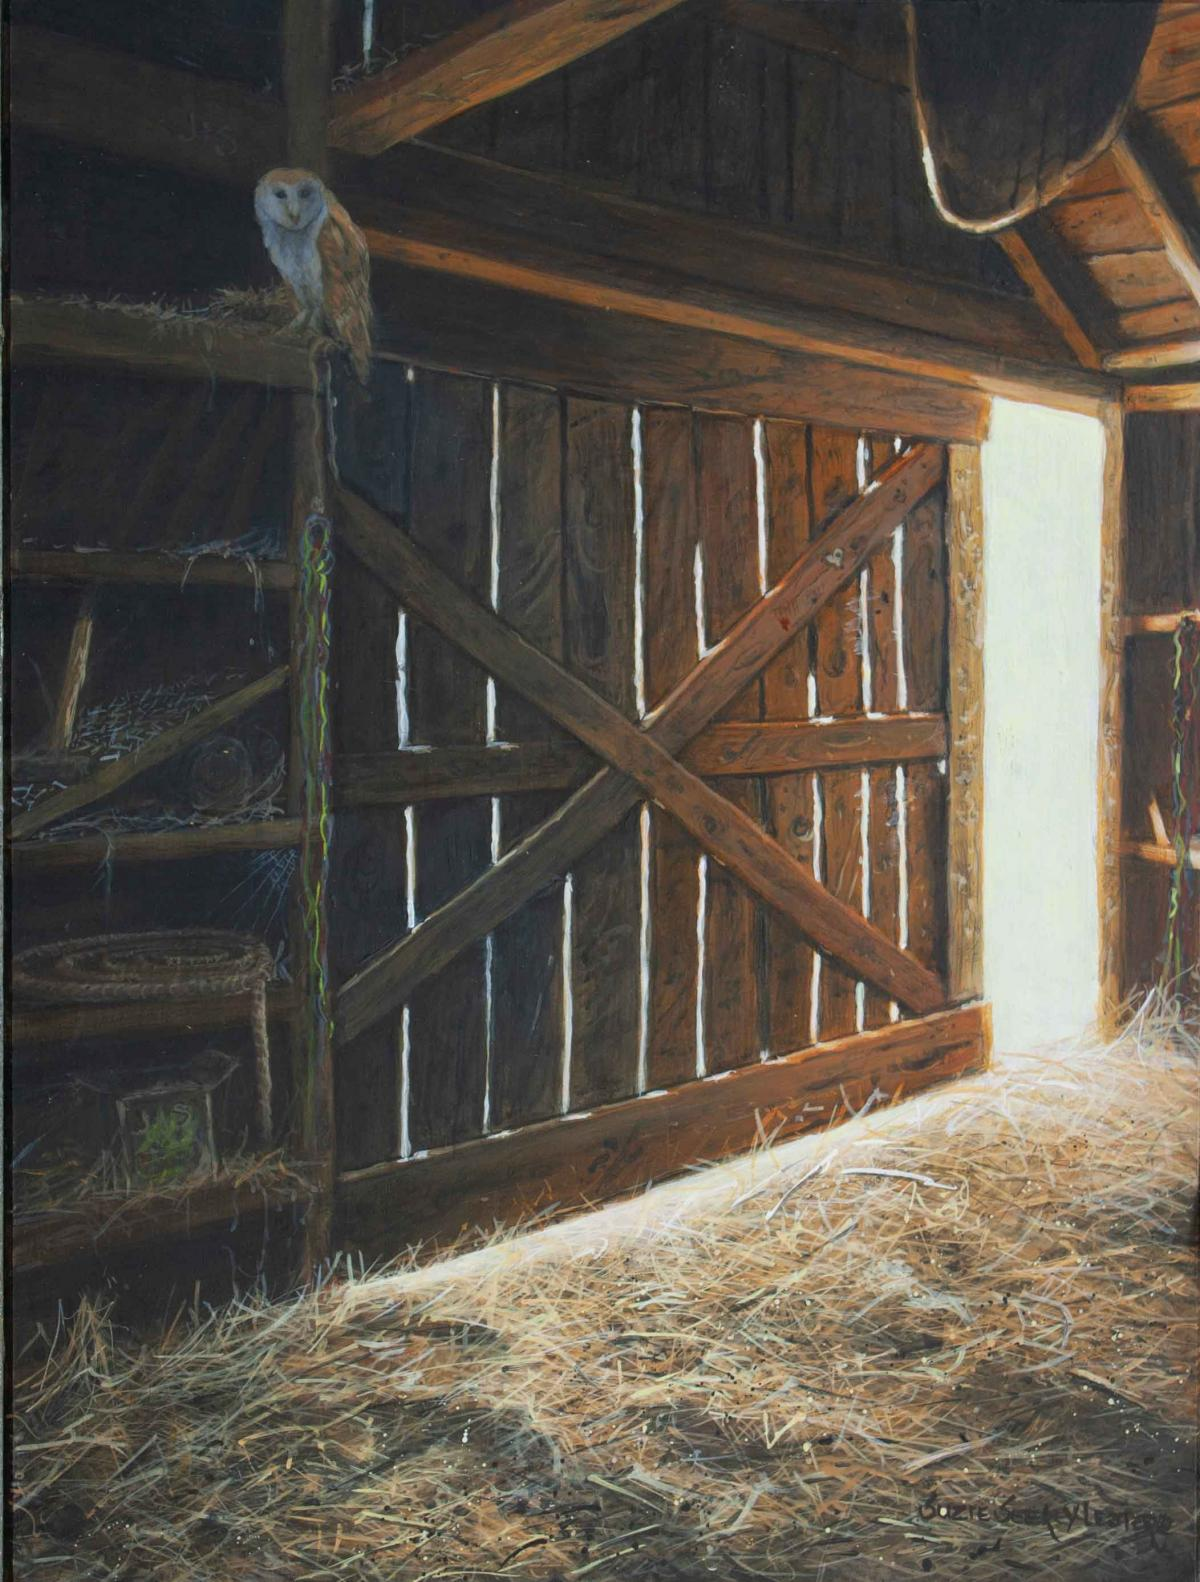 Barn's Early Light | Wallhanging by Suzie Seerey-Lester | Artists for Conservation 2021